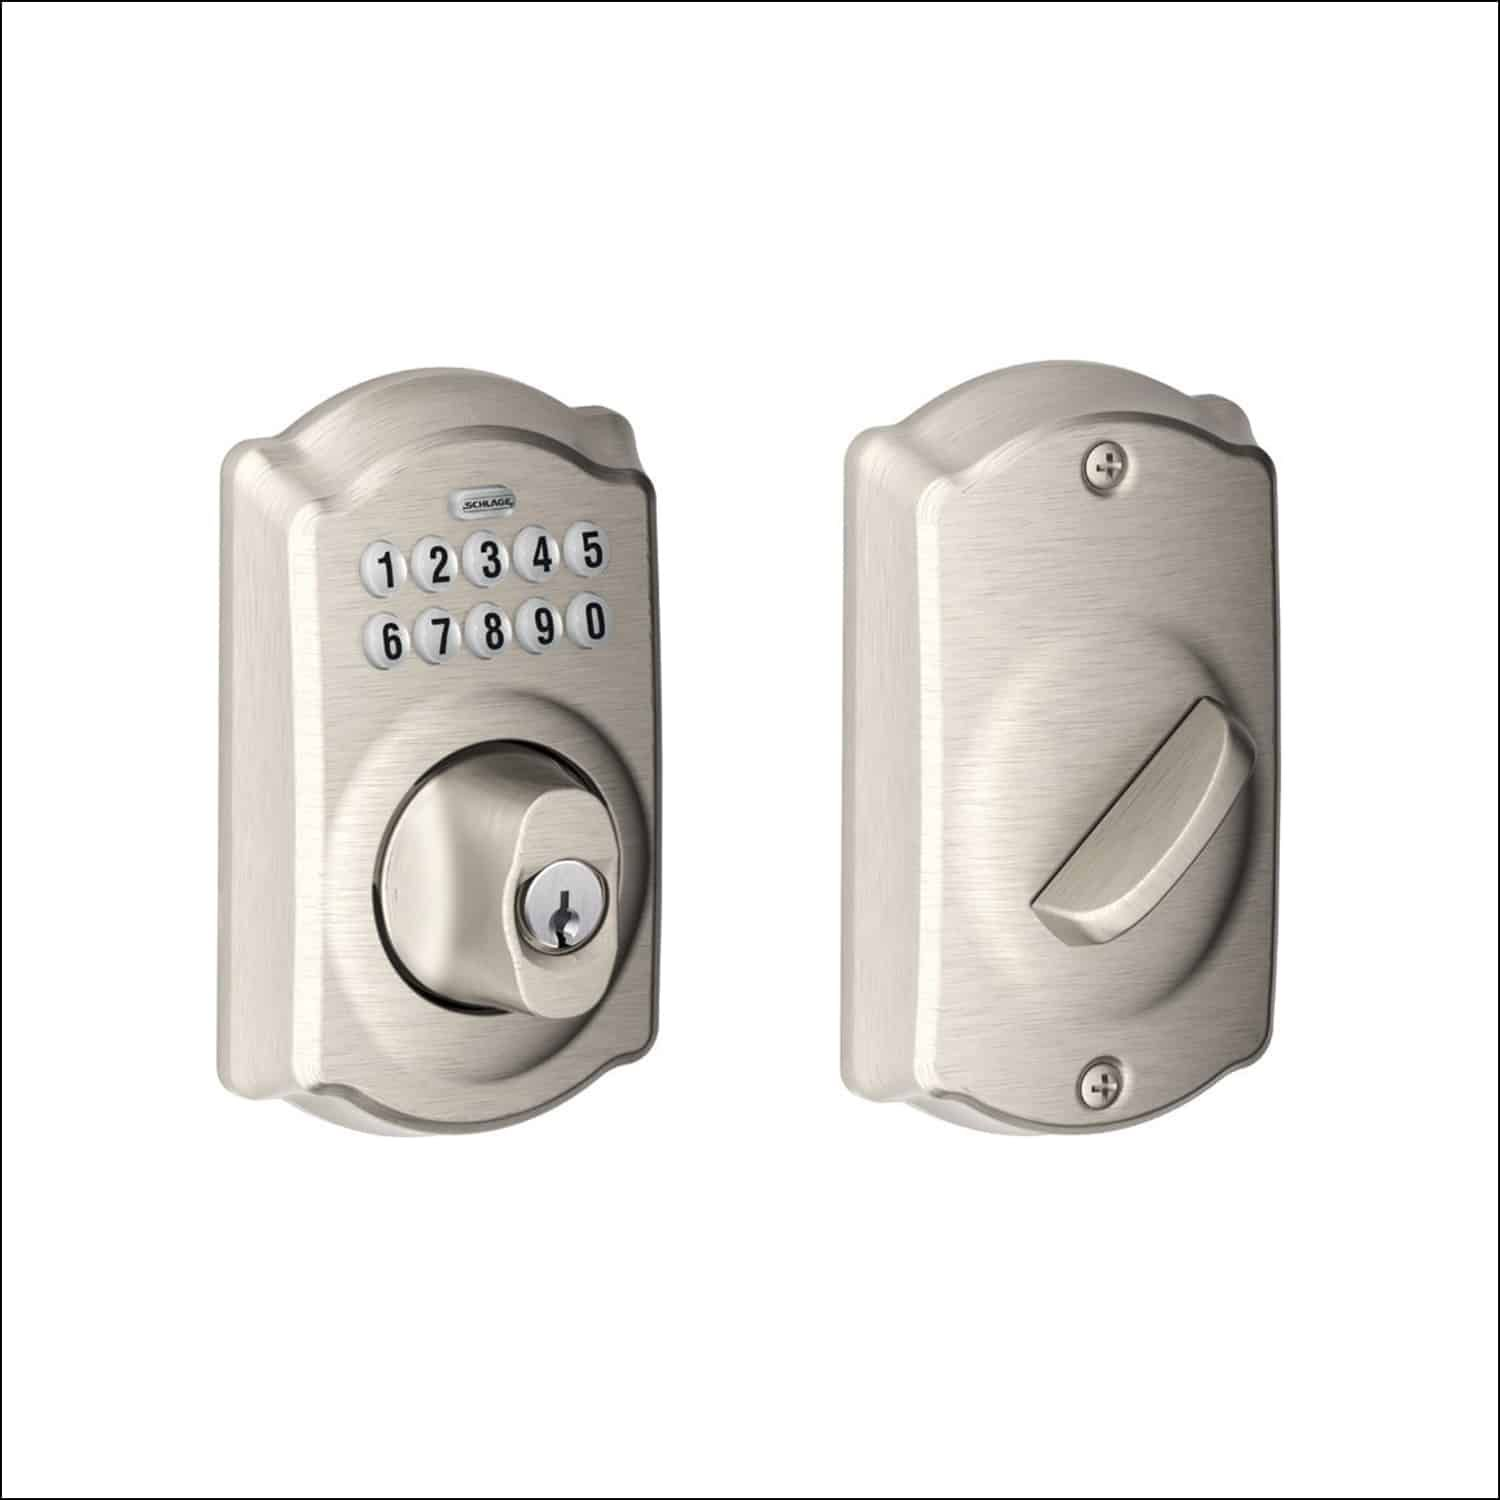 keypad cam deadbolt camelot grip with category schlage accent lever of acc best review connect and touchscreen handleset archives in smart lh door locks alarm built